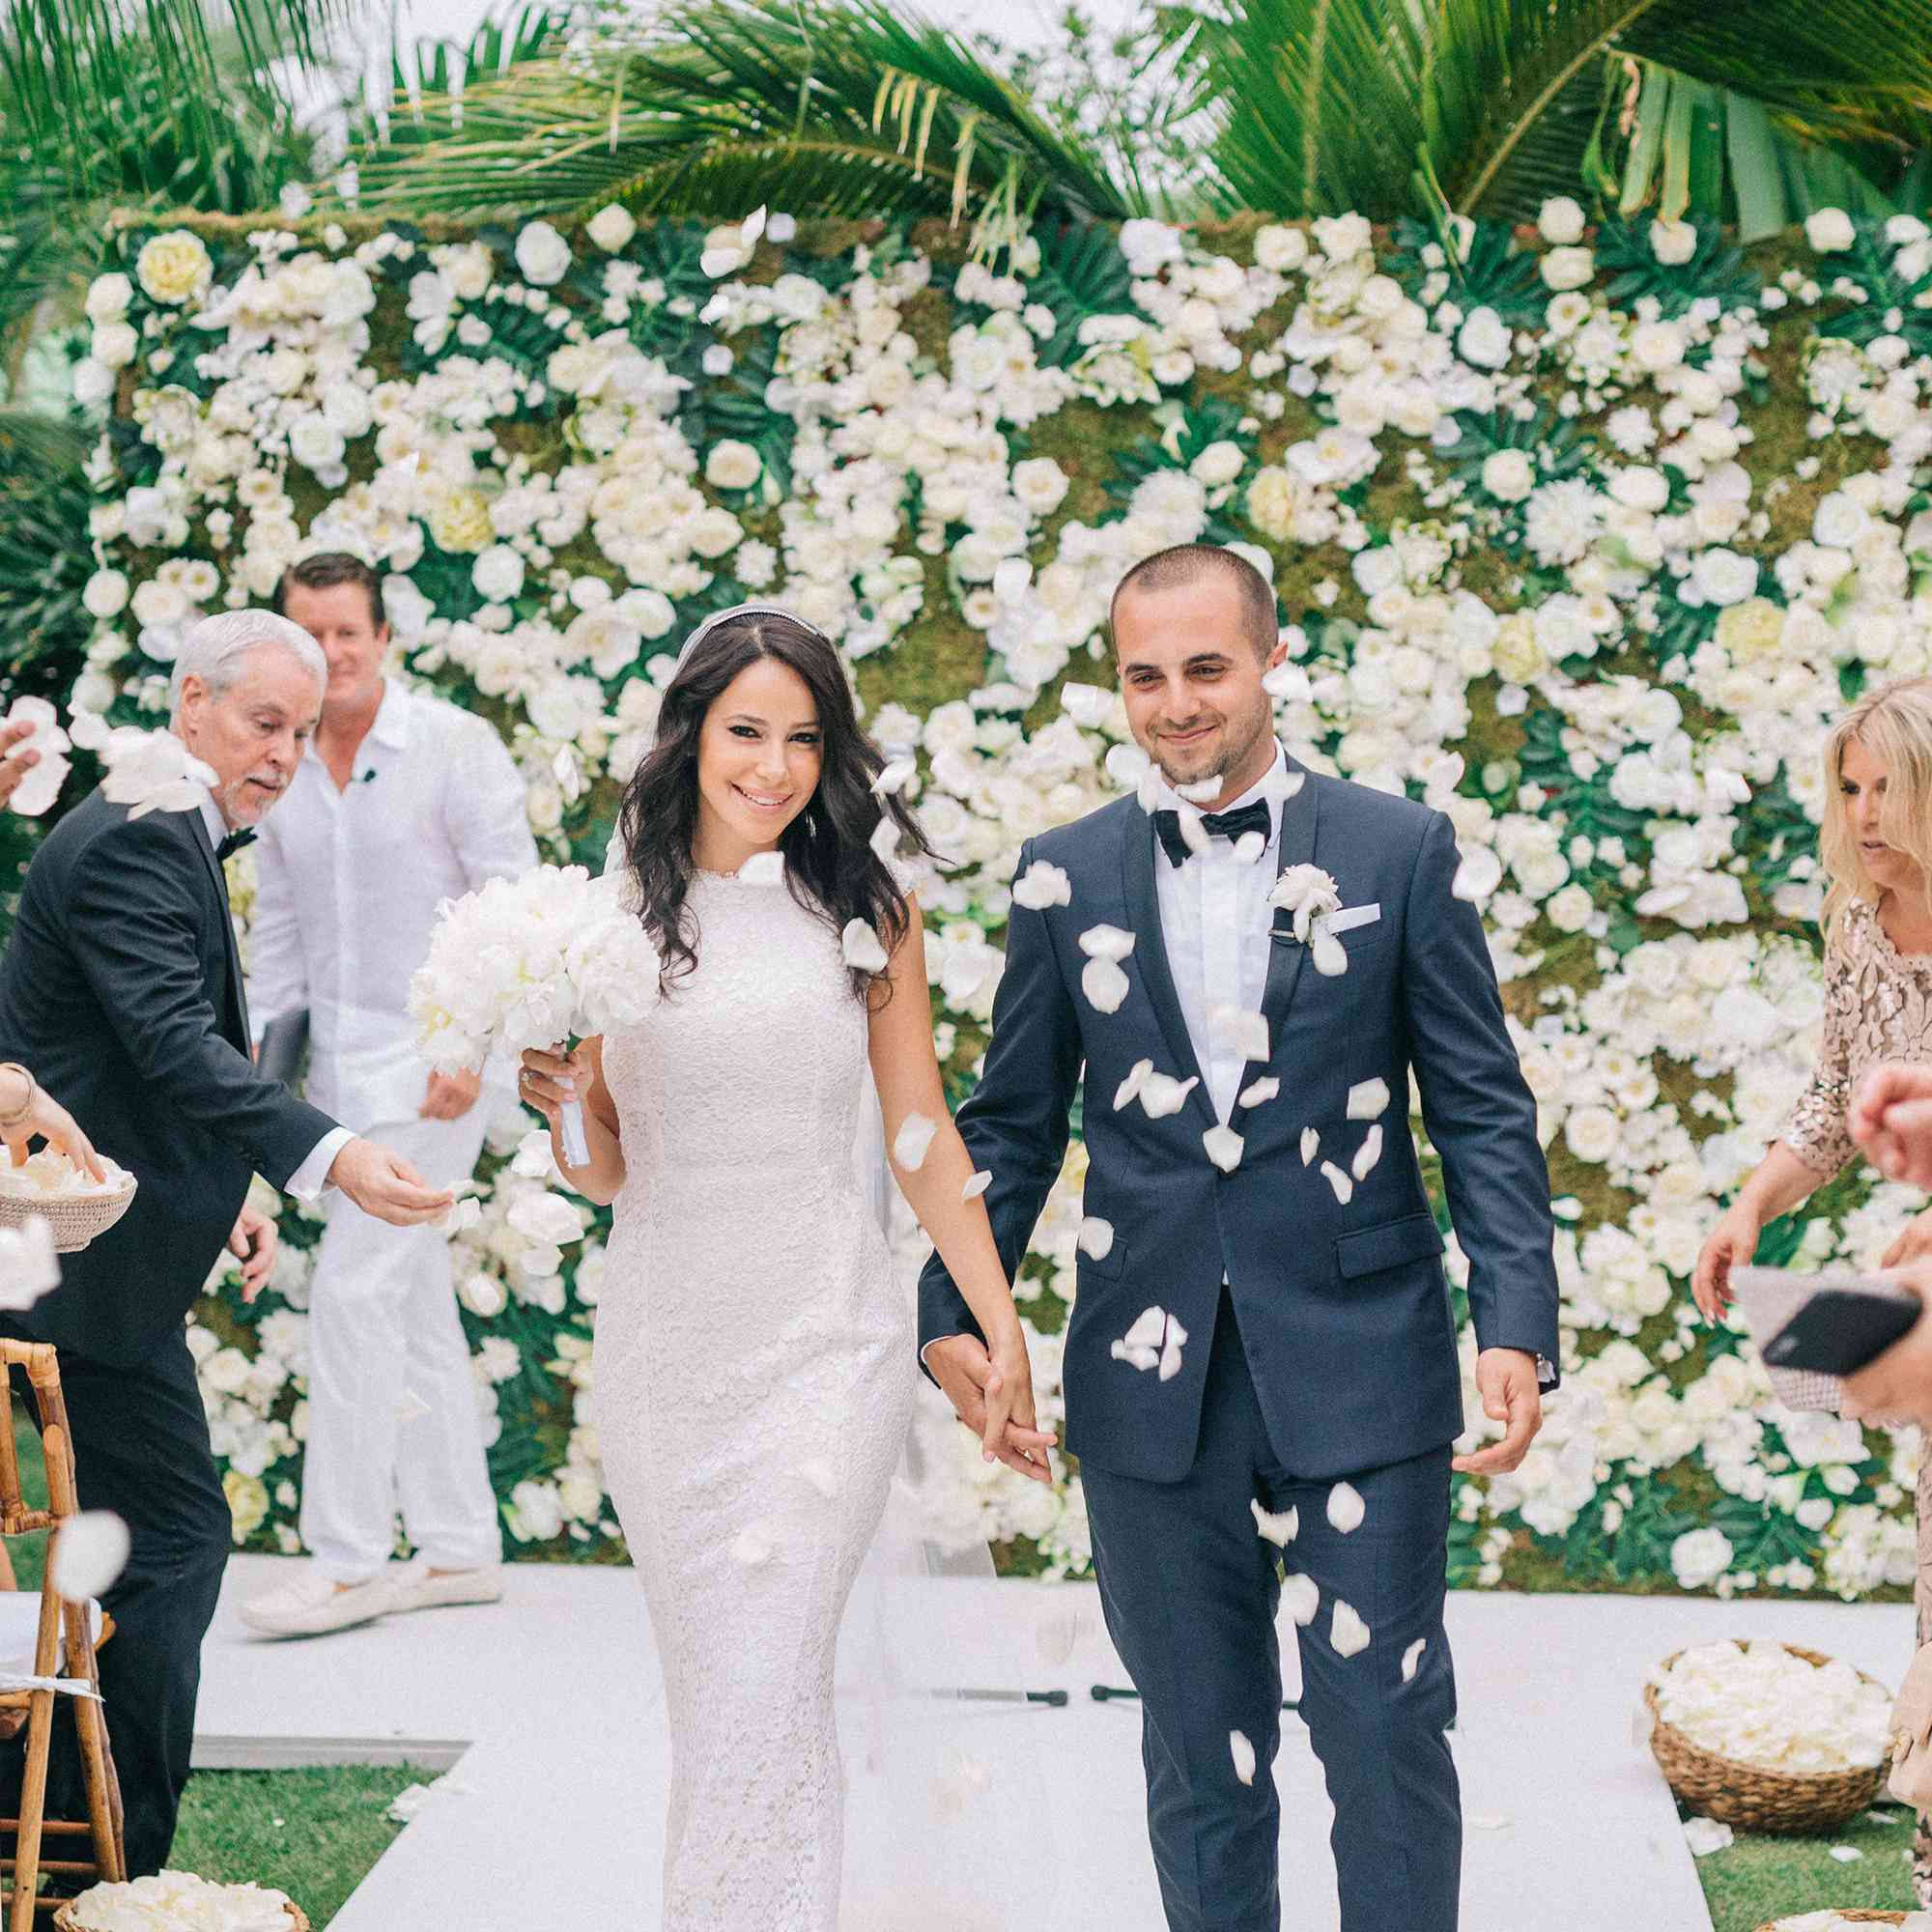 Newly married couple walking down aisle during recessional with flower wall altar in the background